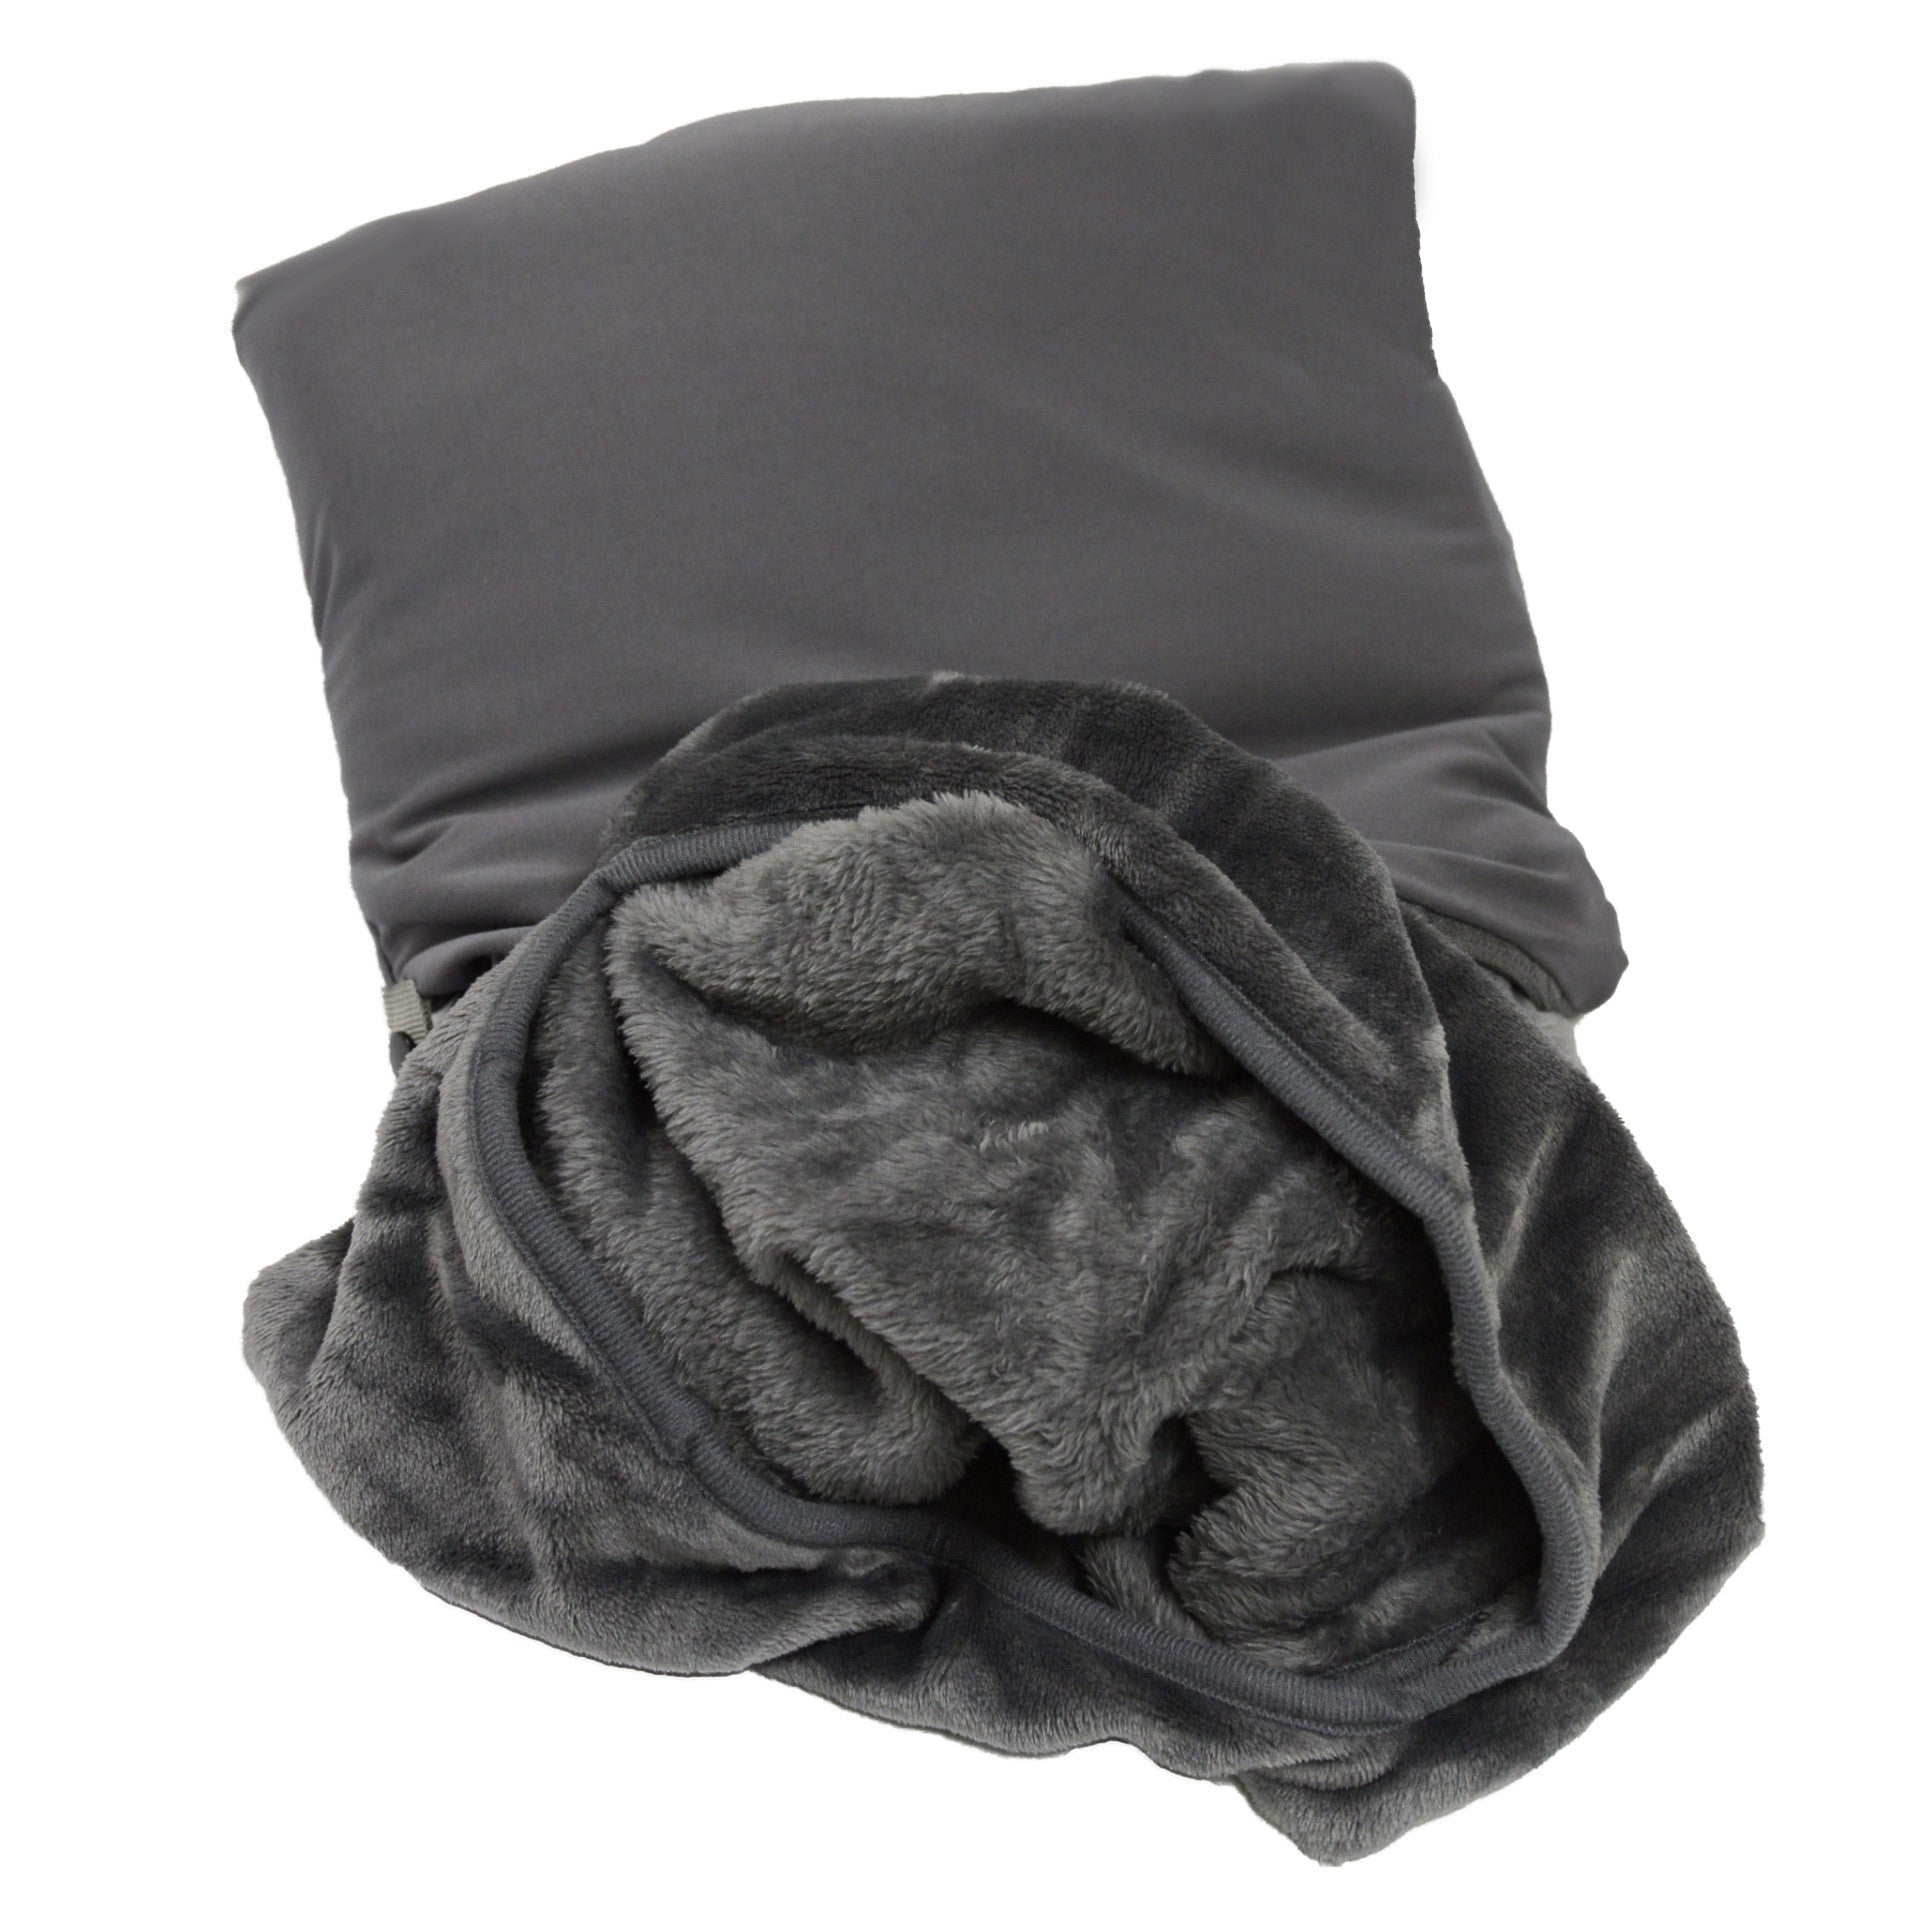 Wrap 4 In 1 Travel Blanket Travelrest